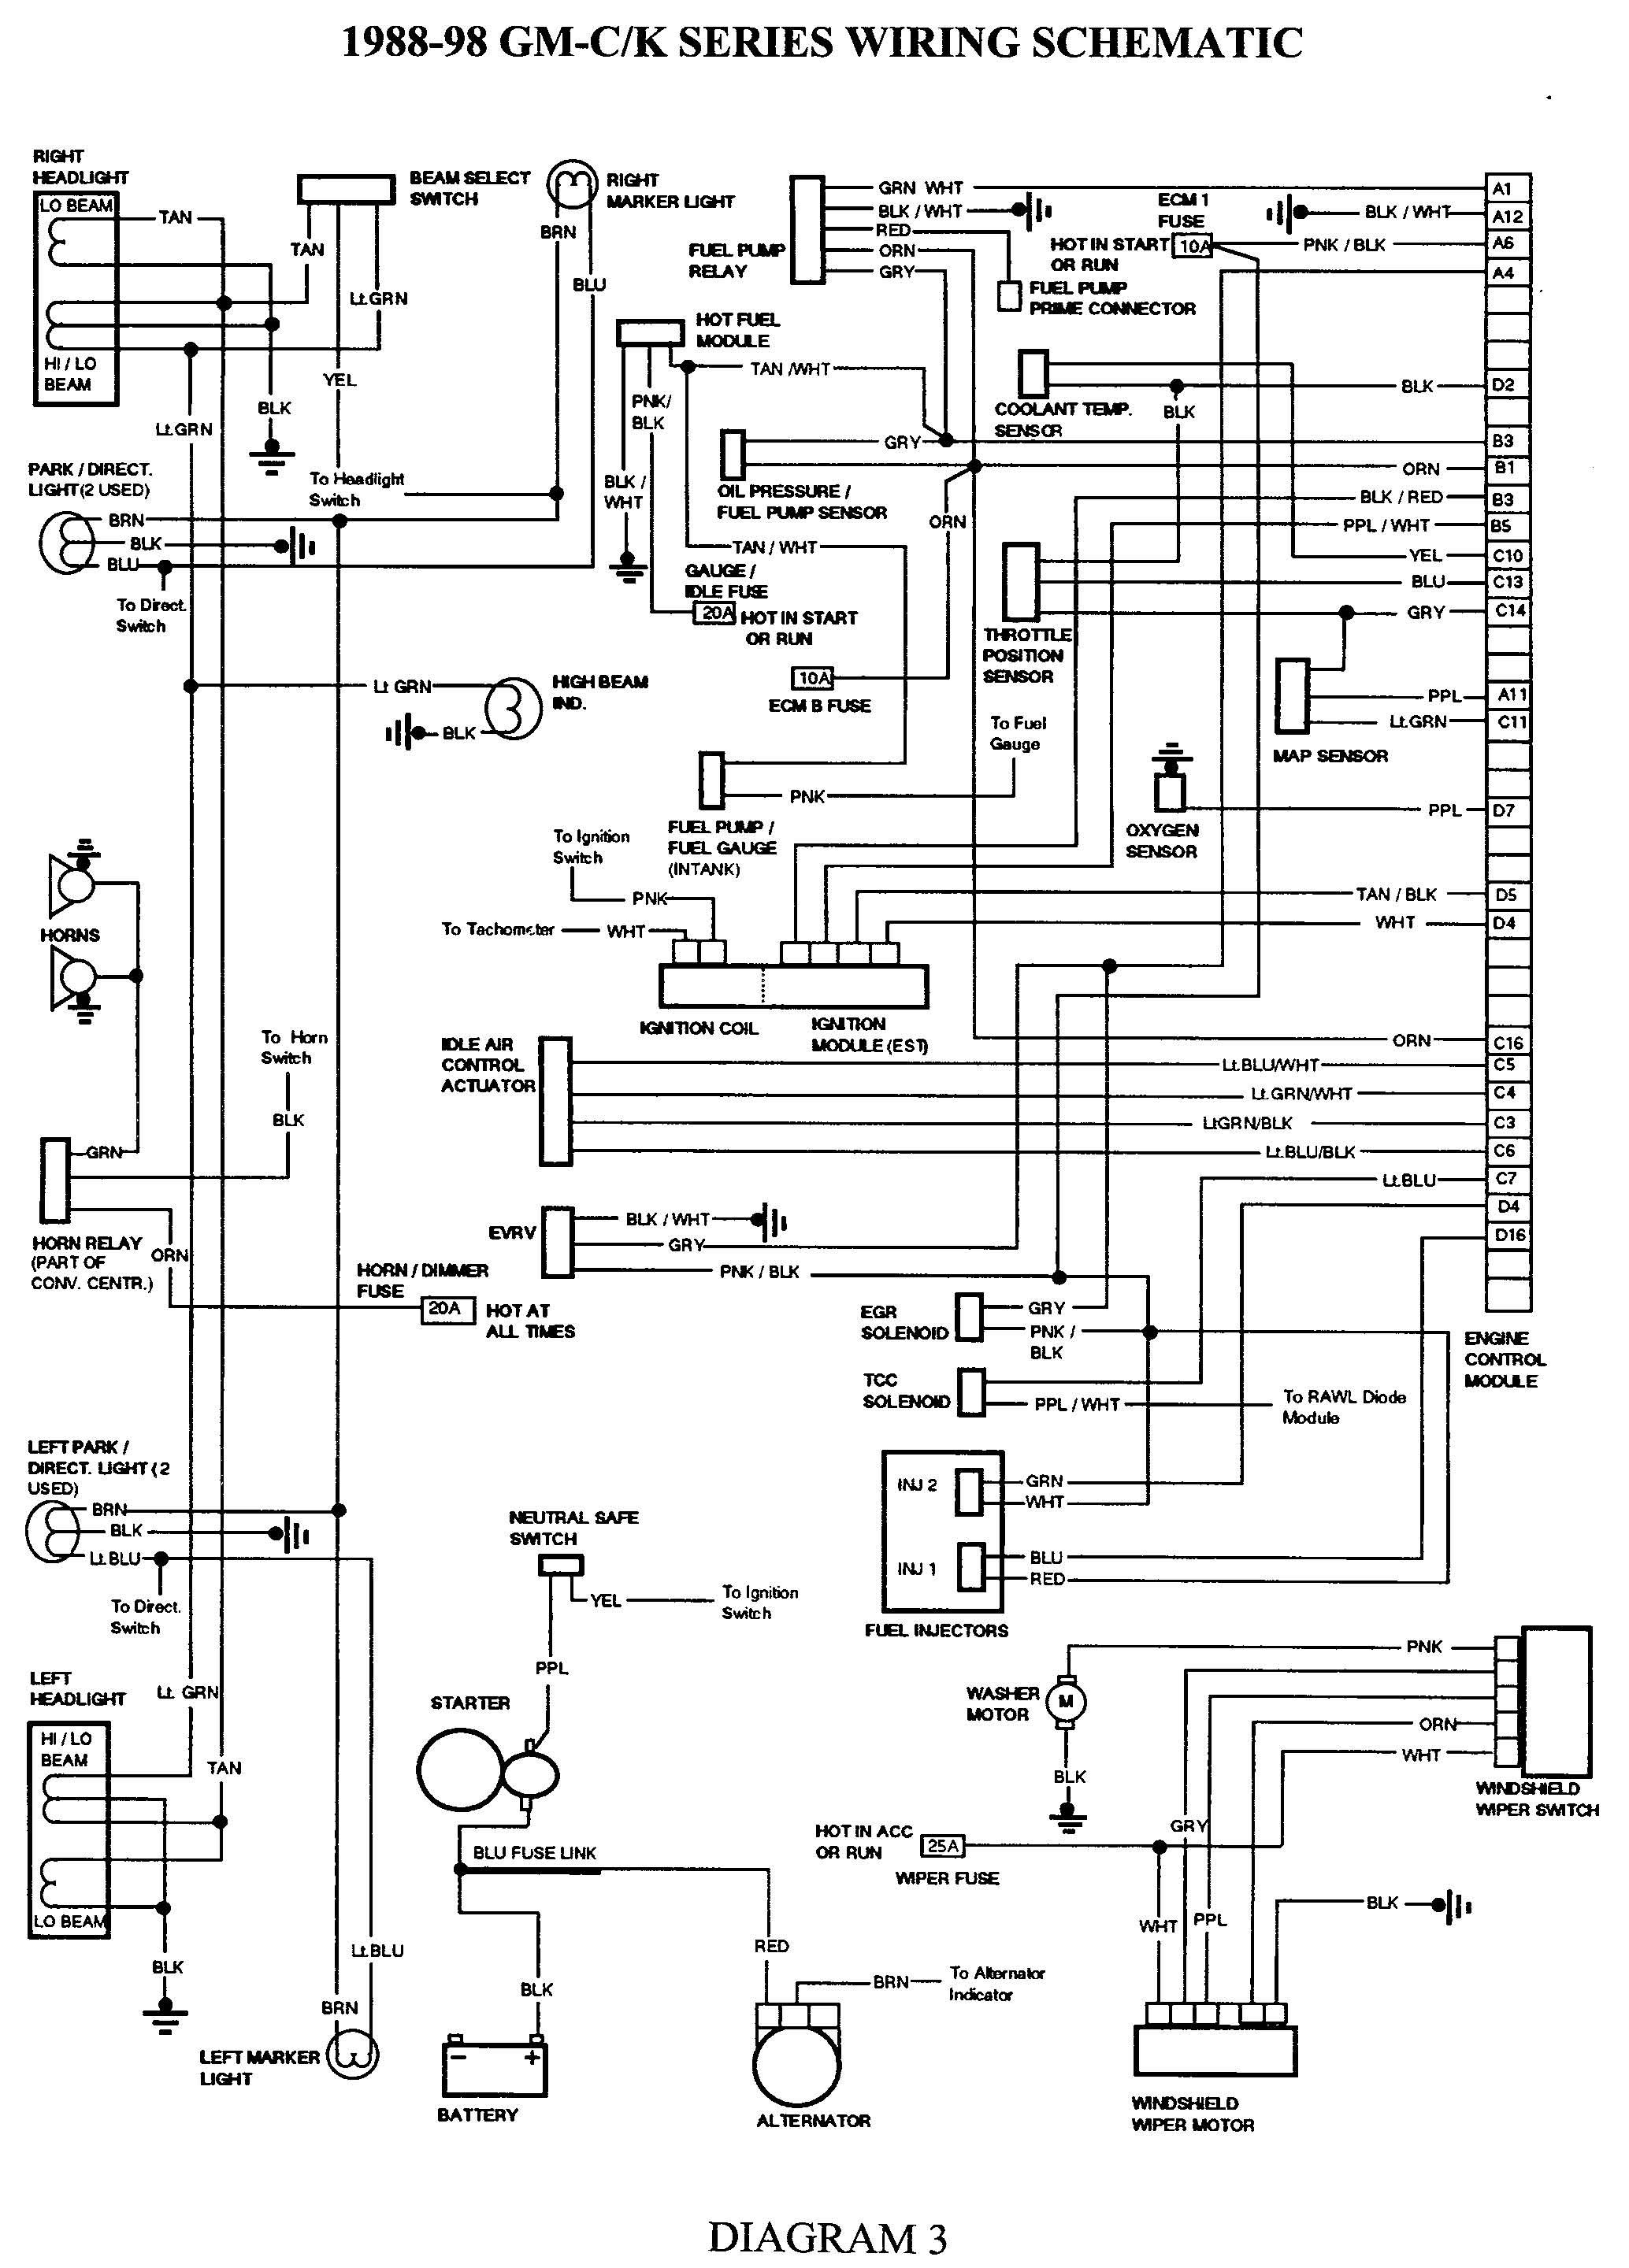 medium resolution of gmc truck wiring diagrams on gm wiring harness diagram 88 98 kc 1984 gmc truck wiring diagram gmc general trucks wiring diagram